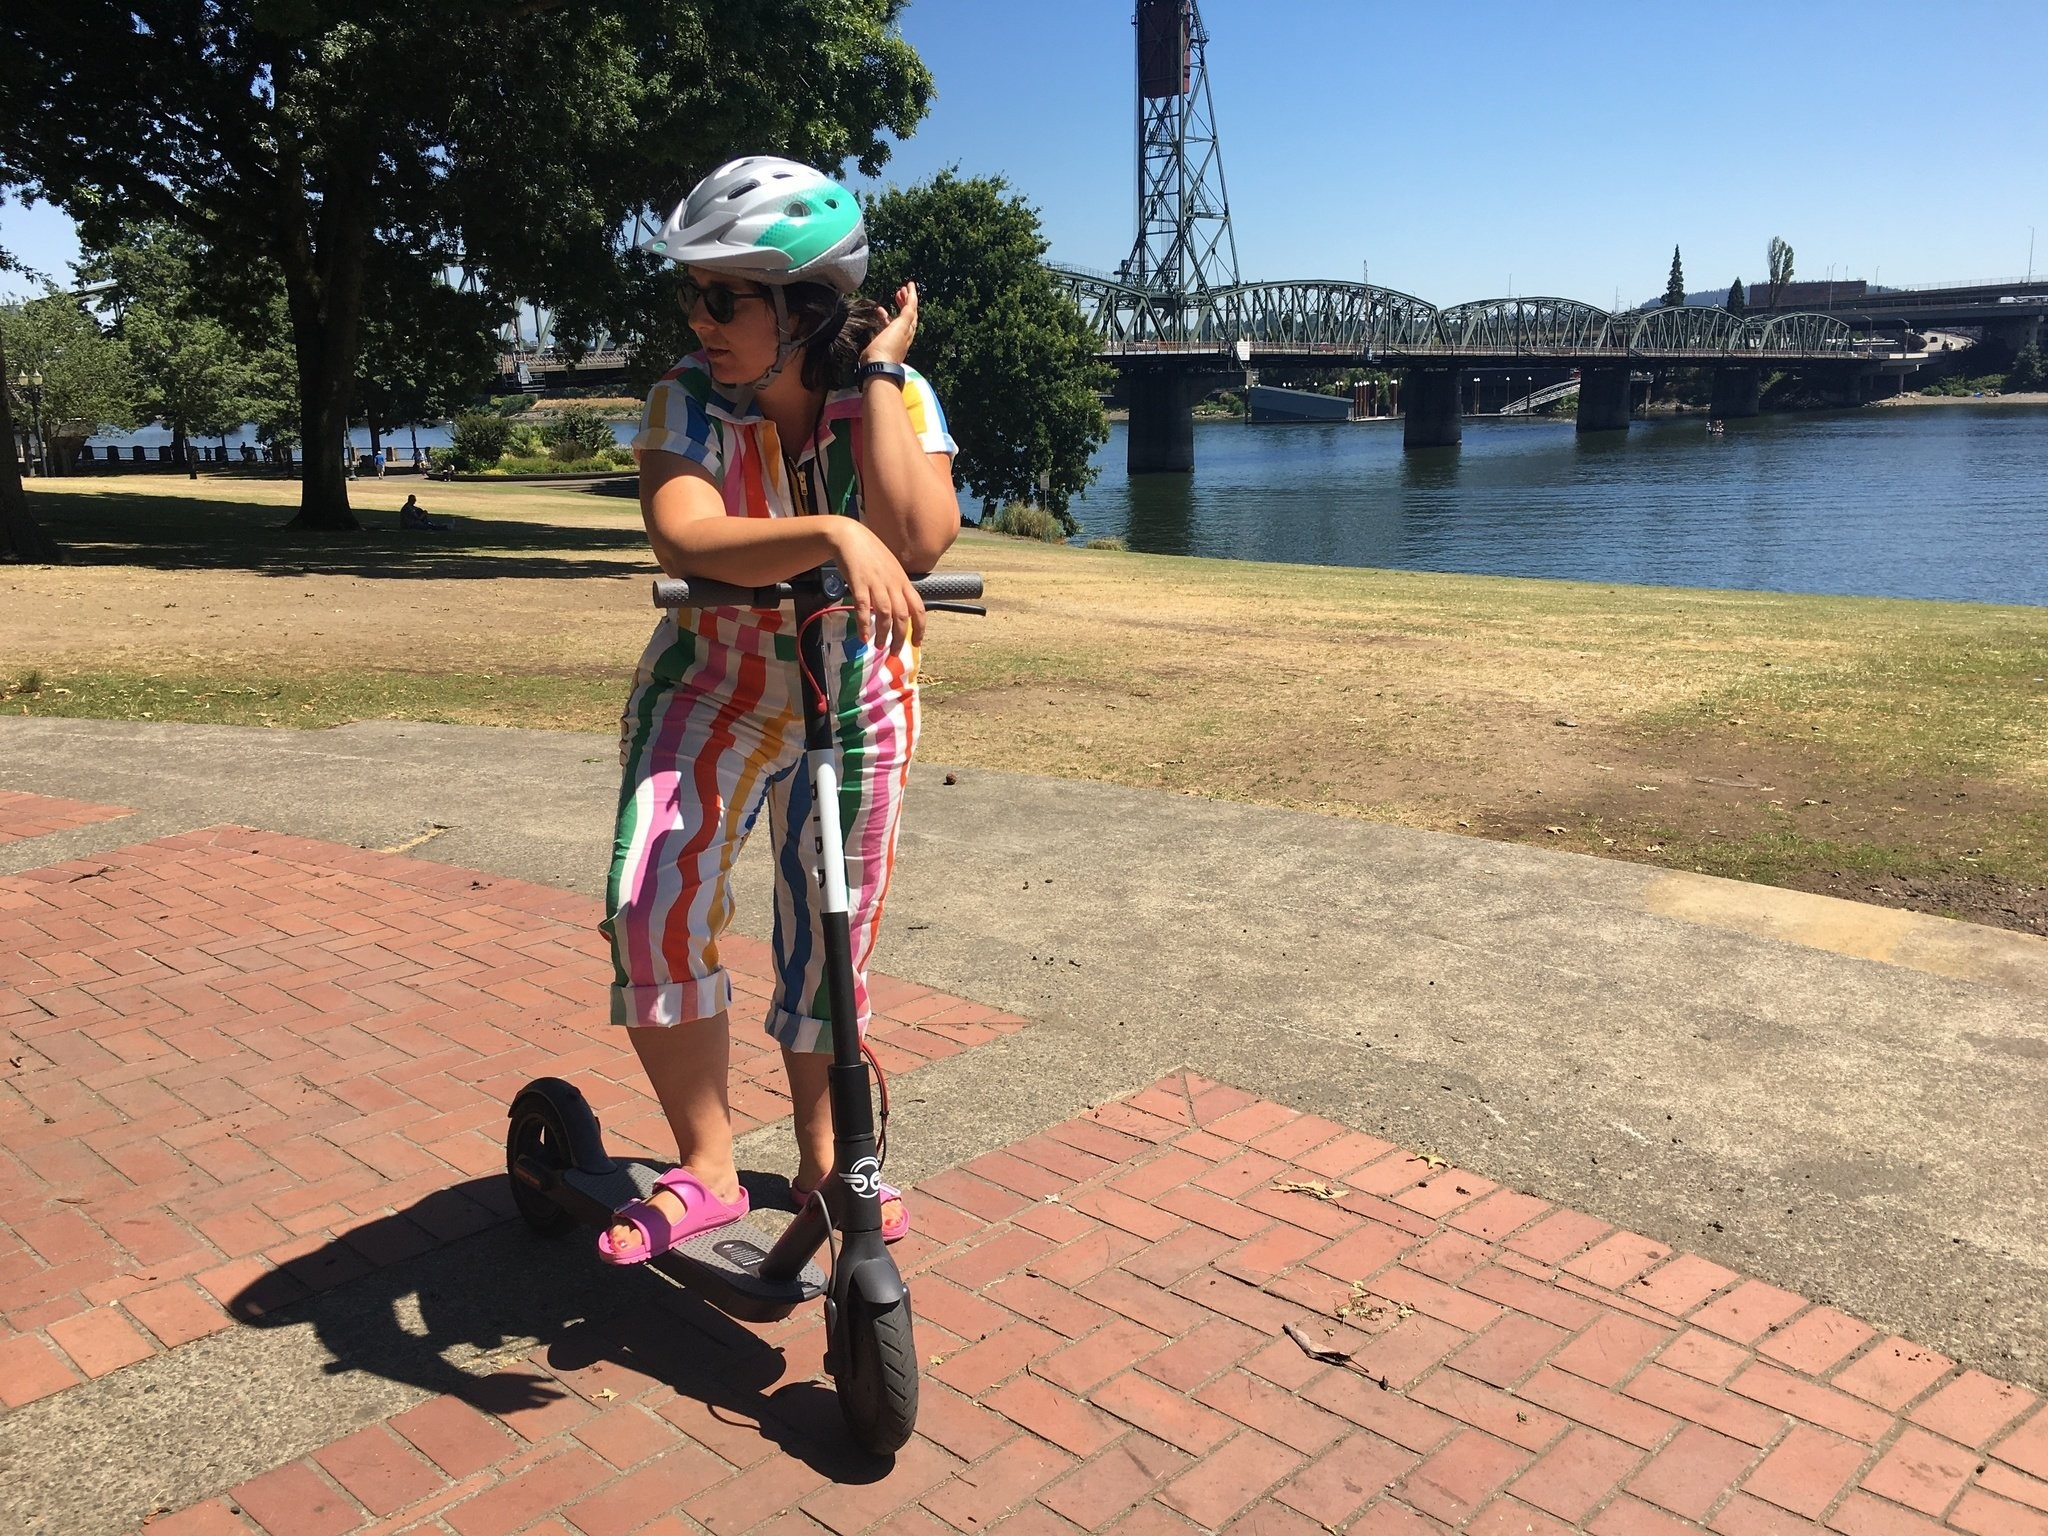 I took an electric scooter on a 12 5-mile journey through